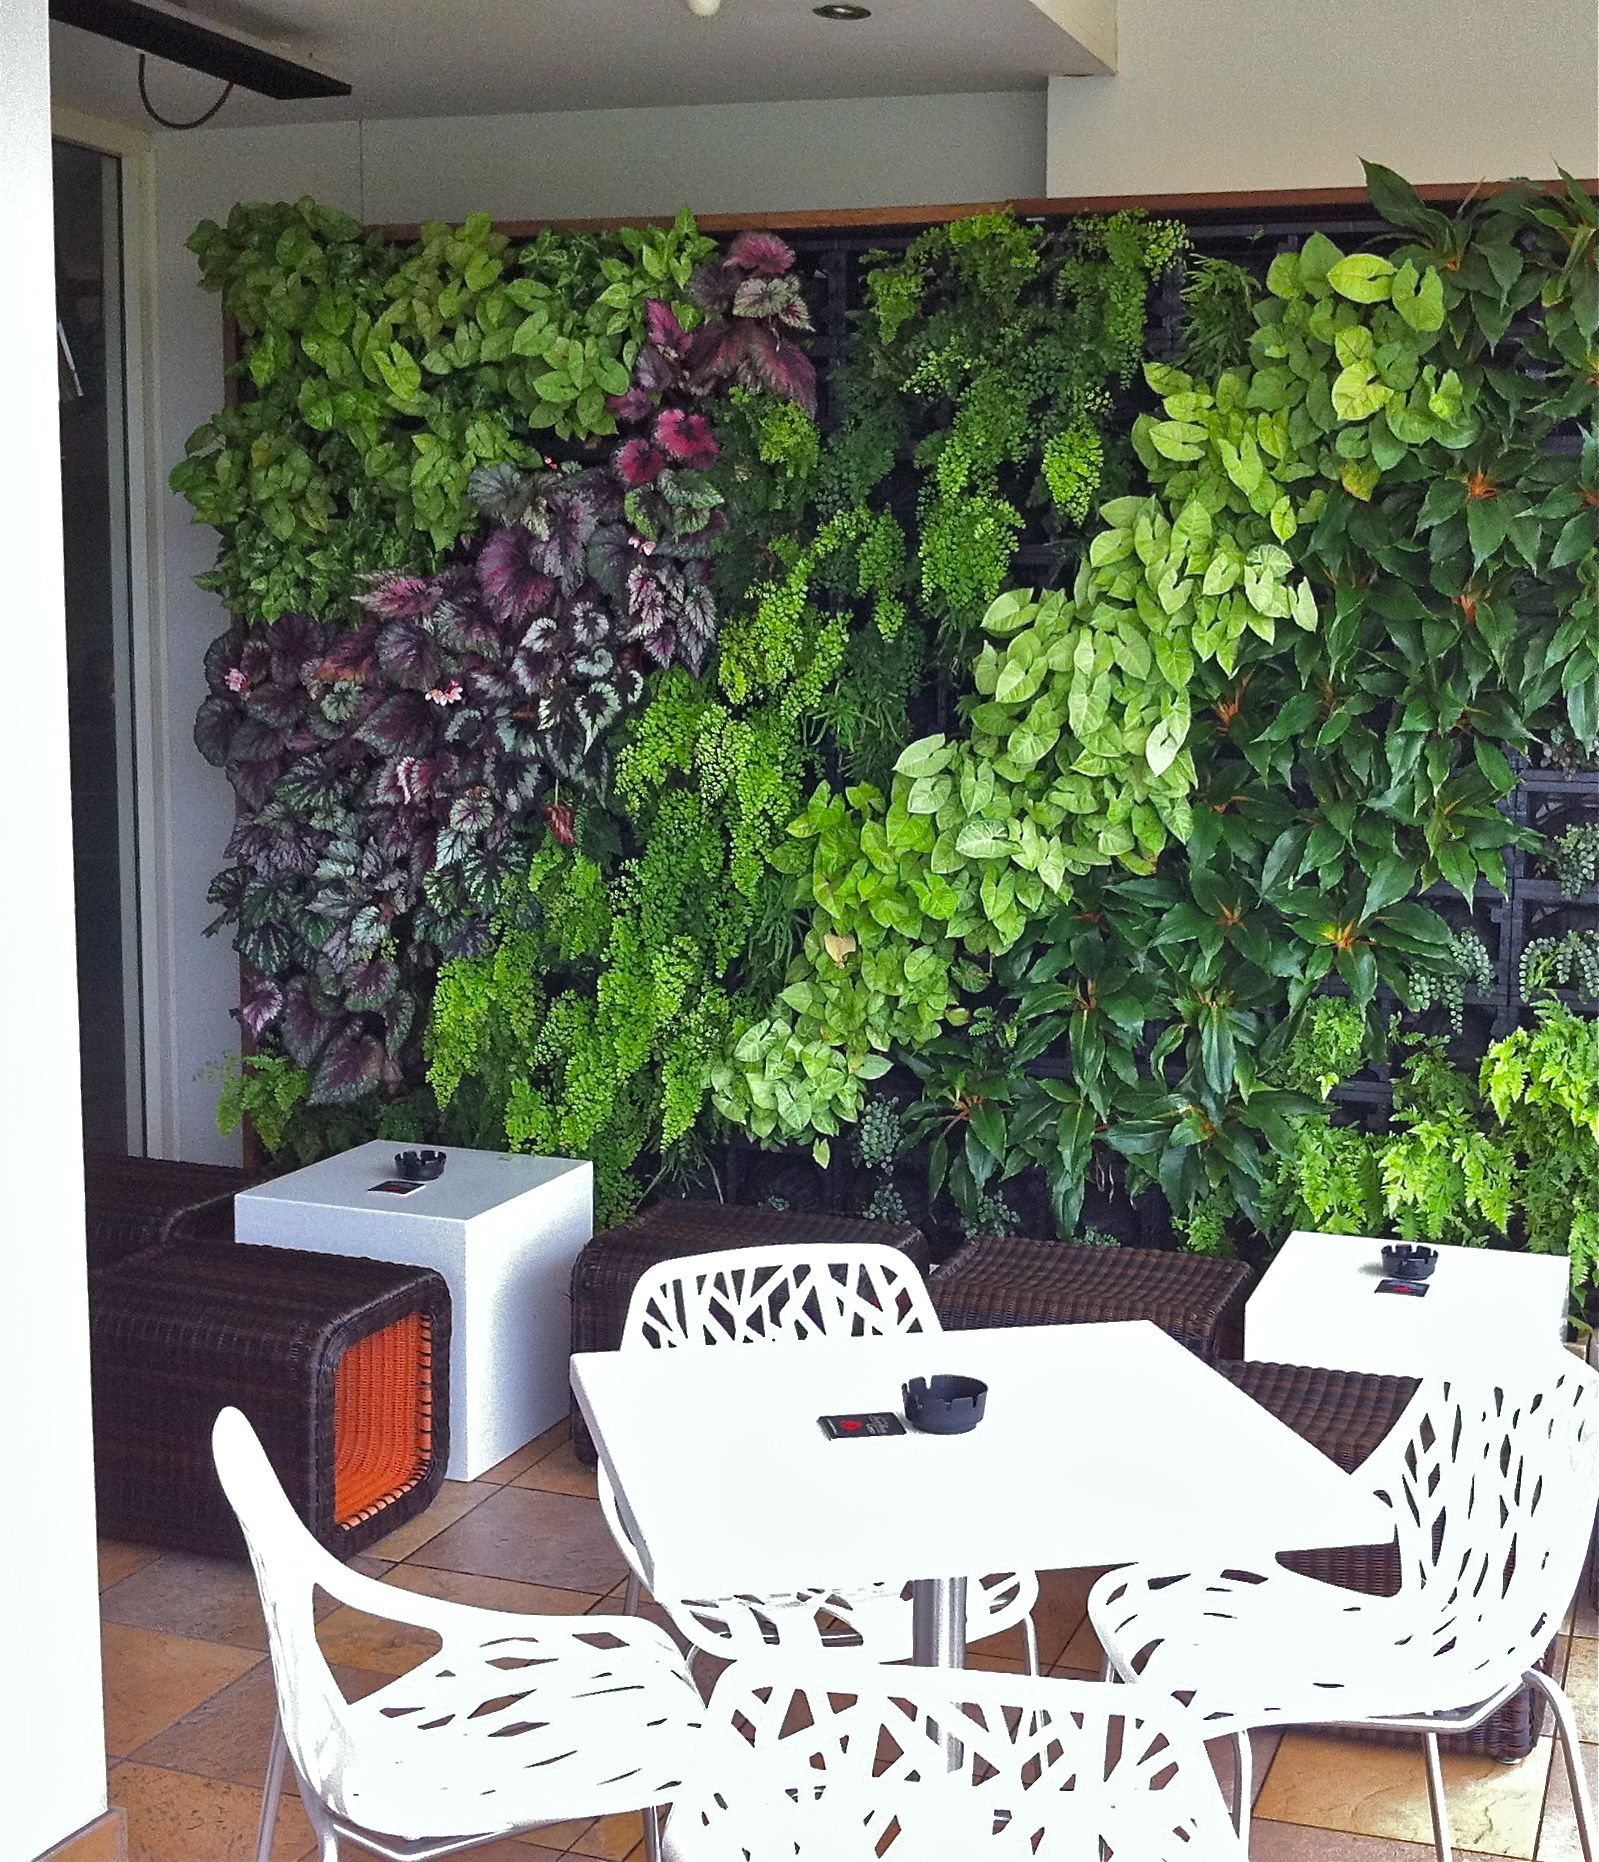 Green wall garden green roof garden vertical garden for Garden design kits